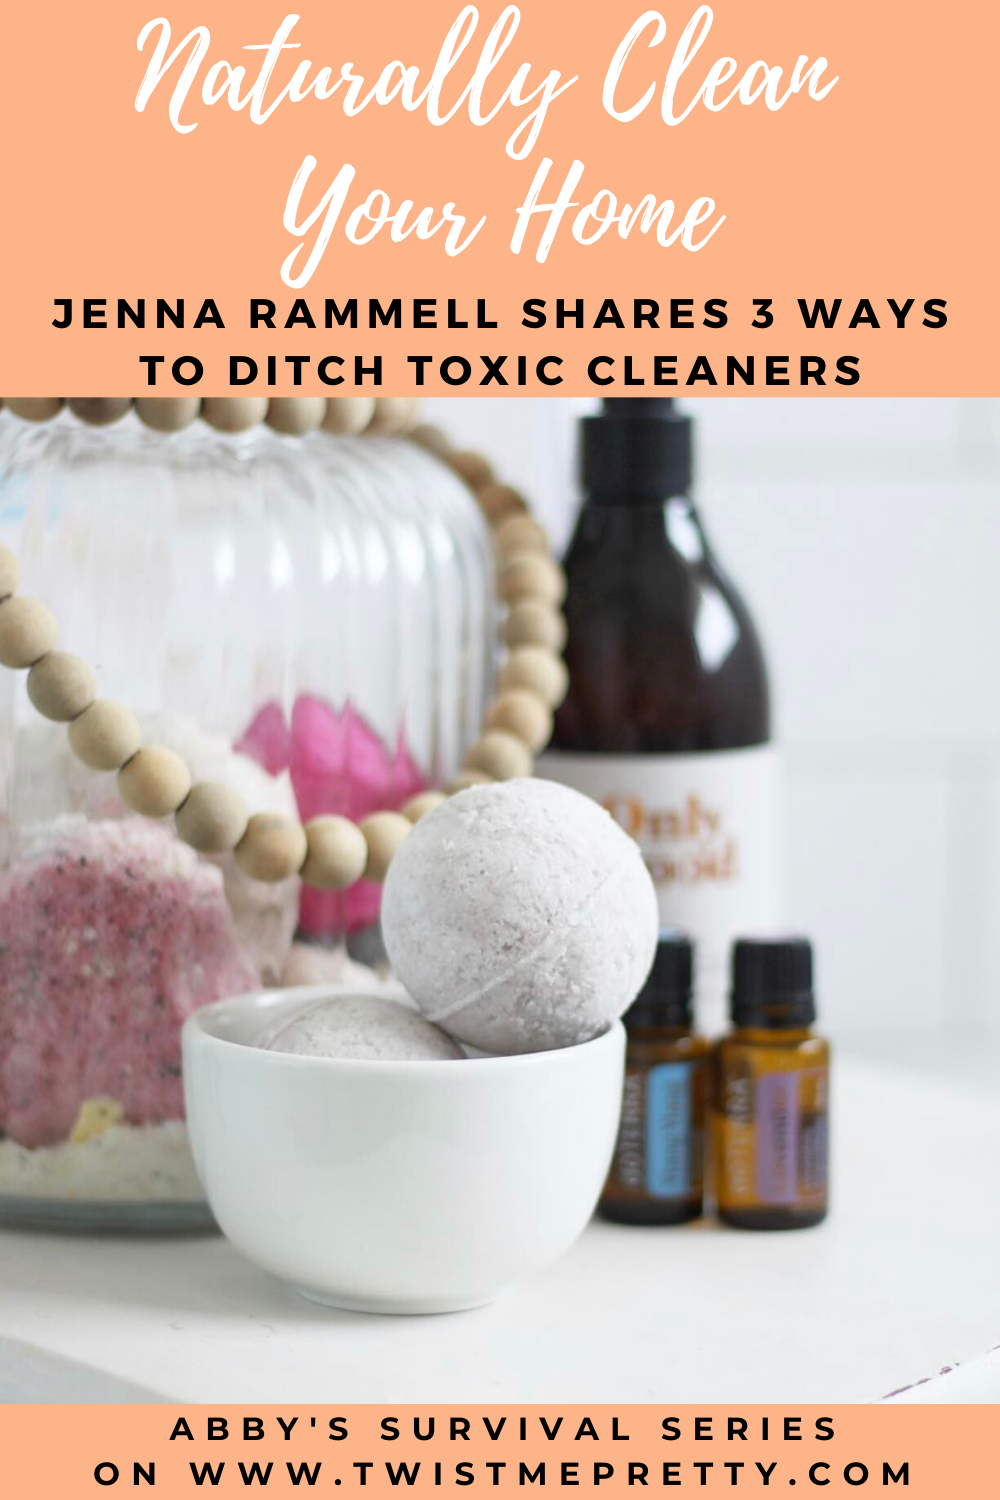 Naturally Clean Your Home. Jenna Rammell shares 3 ways to ditch toxic cleaners. A part of Abby's Survival Series. www.TwistMePretty.com